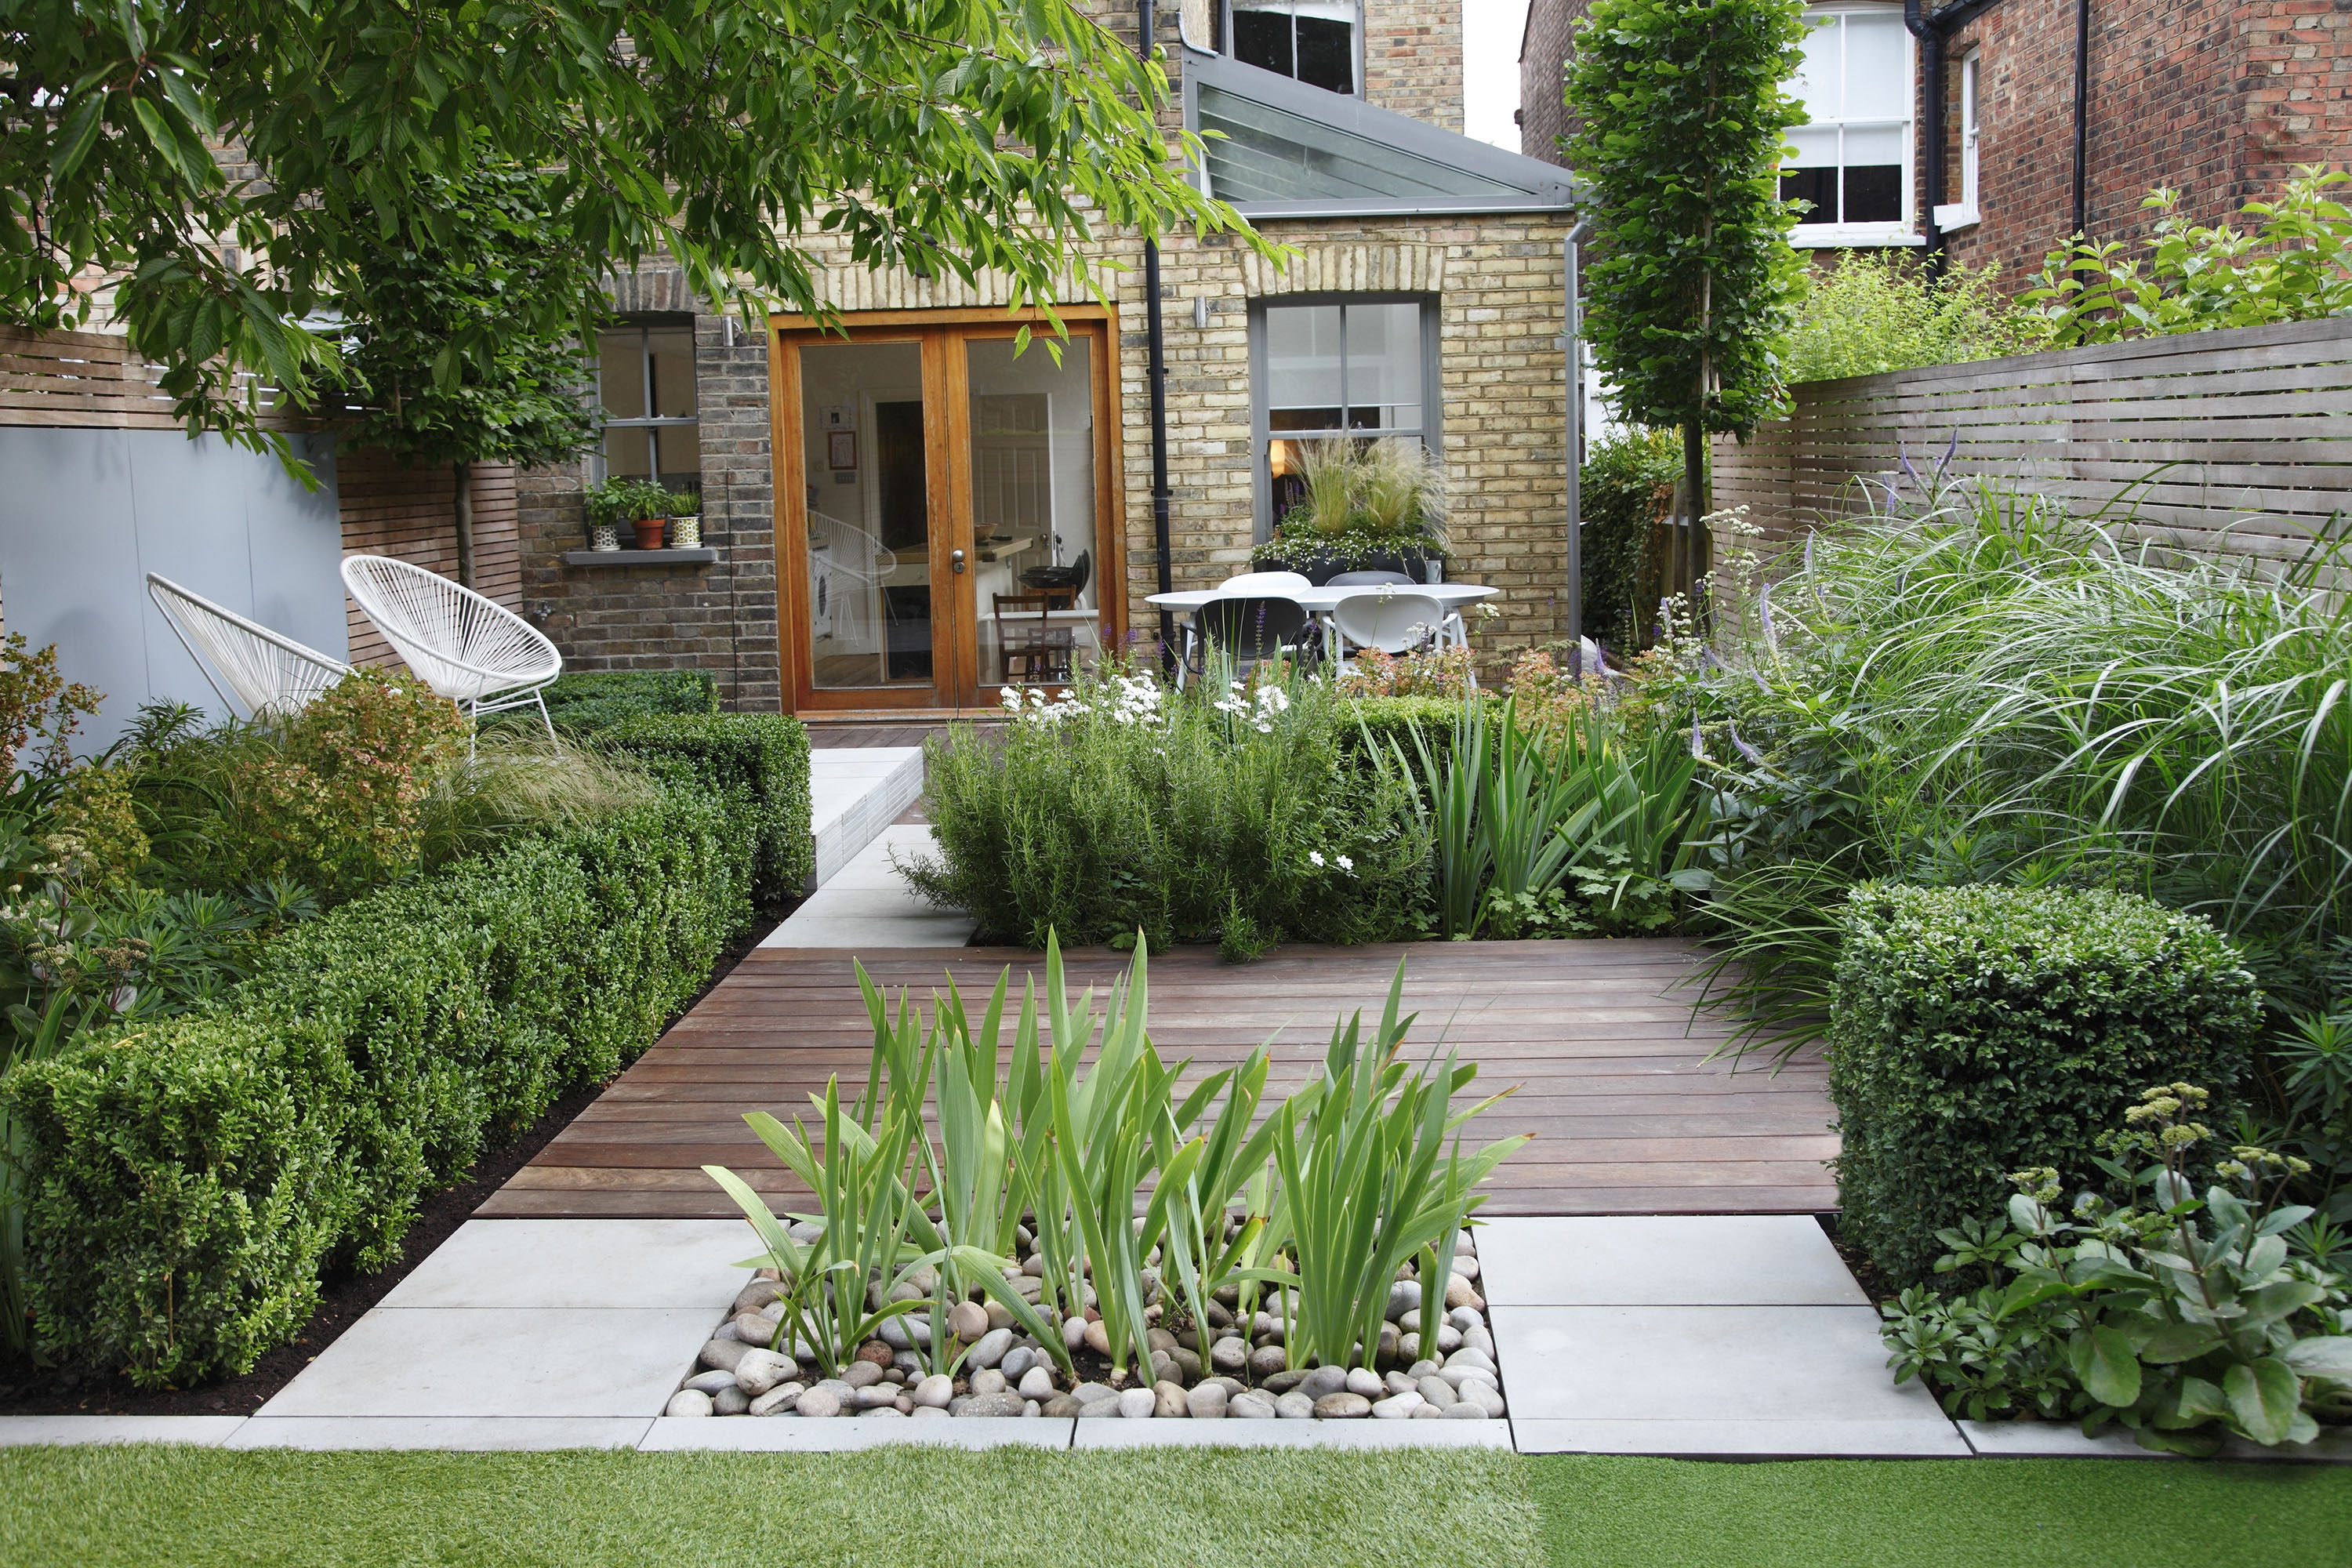 Small garden layout ideas 20 clever ways to arrange your space ...